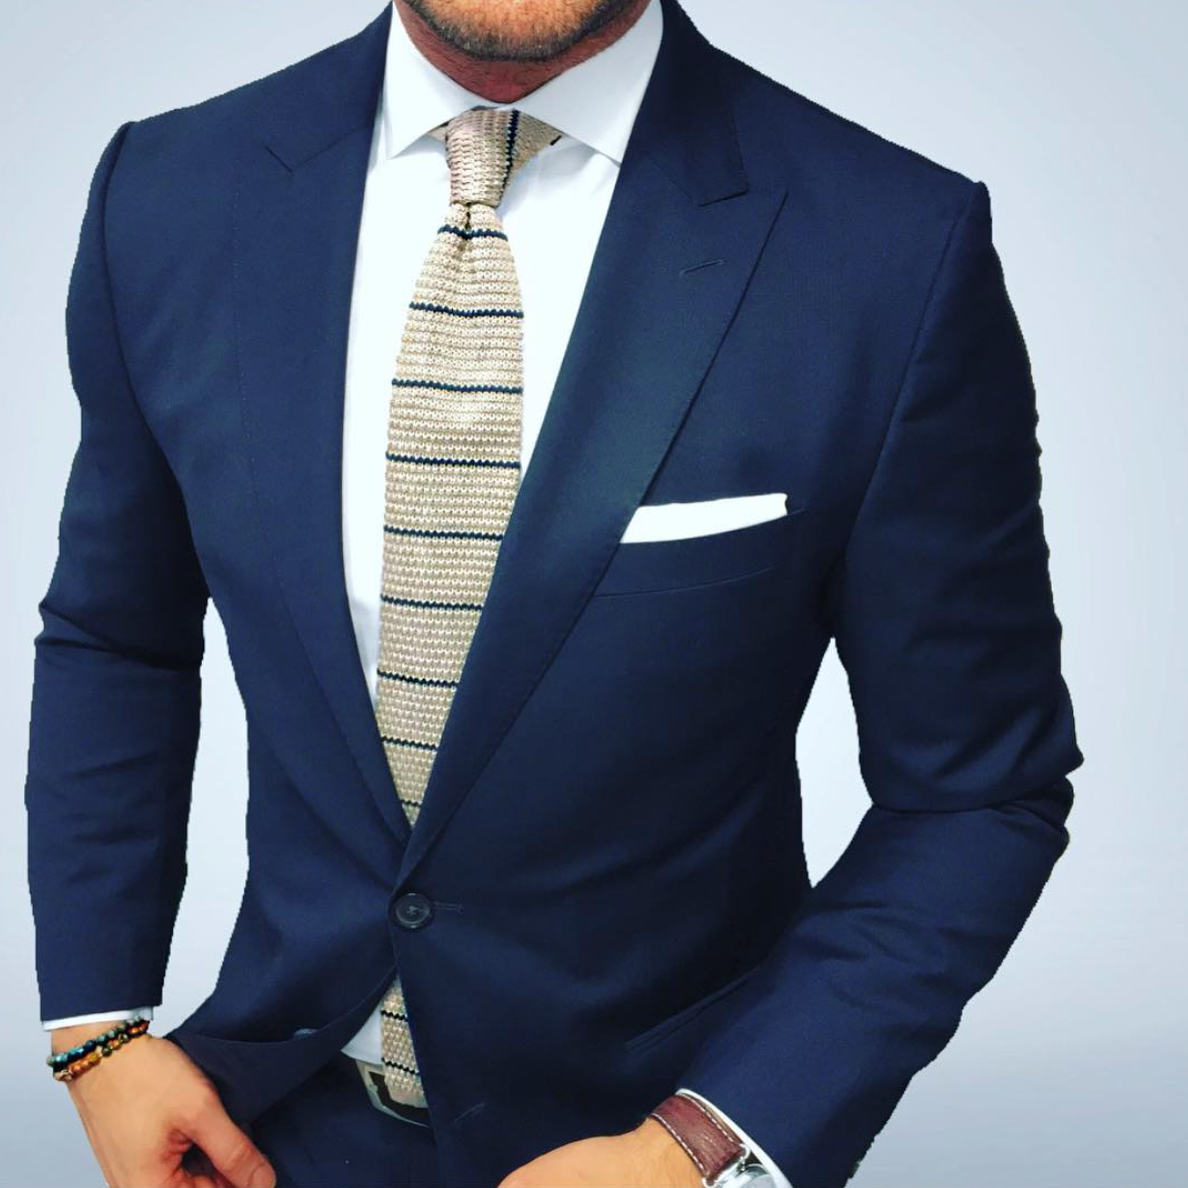 Cotton Knit Tie in Gray with Navy Stripes